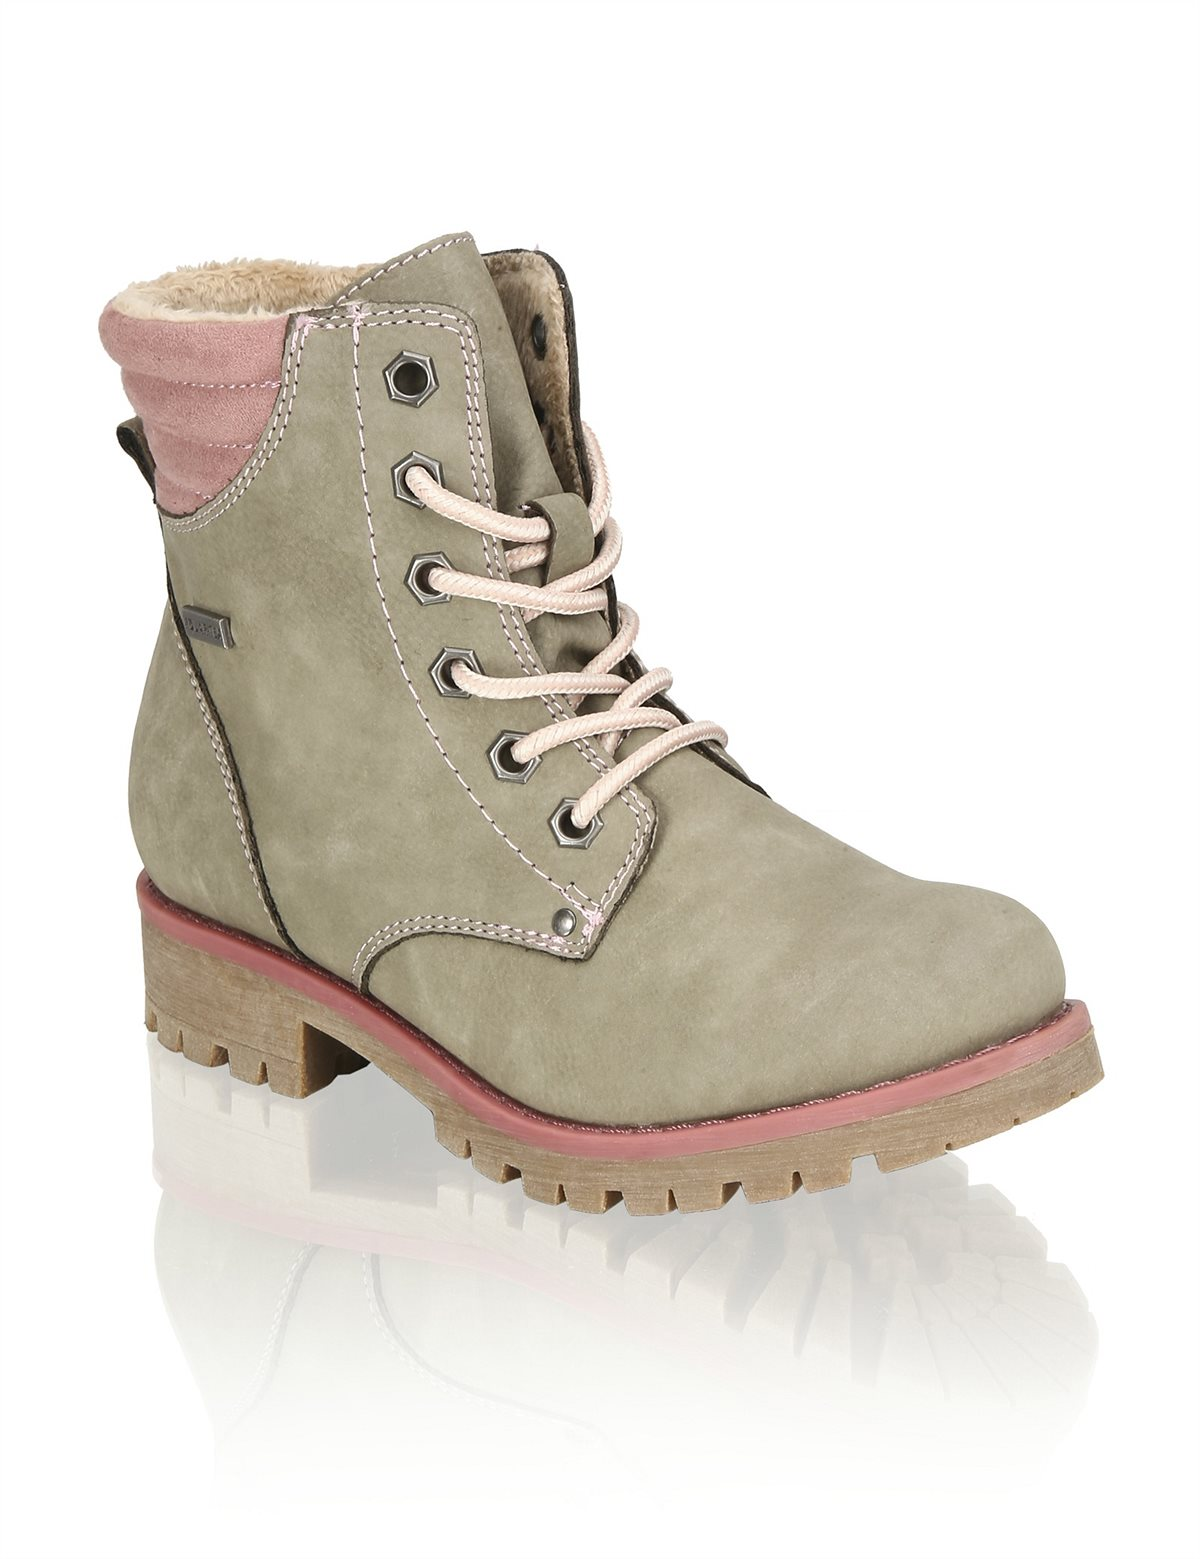 HUMANIC 11 Kids Funky Girls Boot ab EUR 39,95 ab Mitte September 3623504734